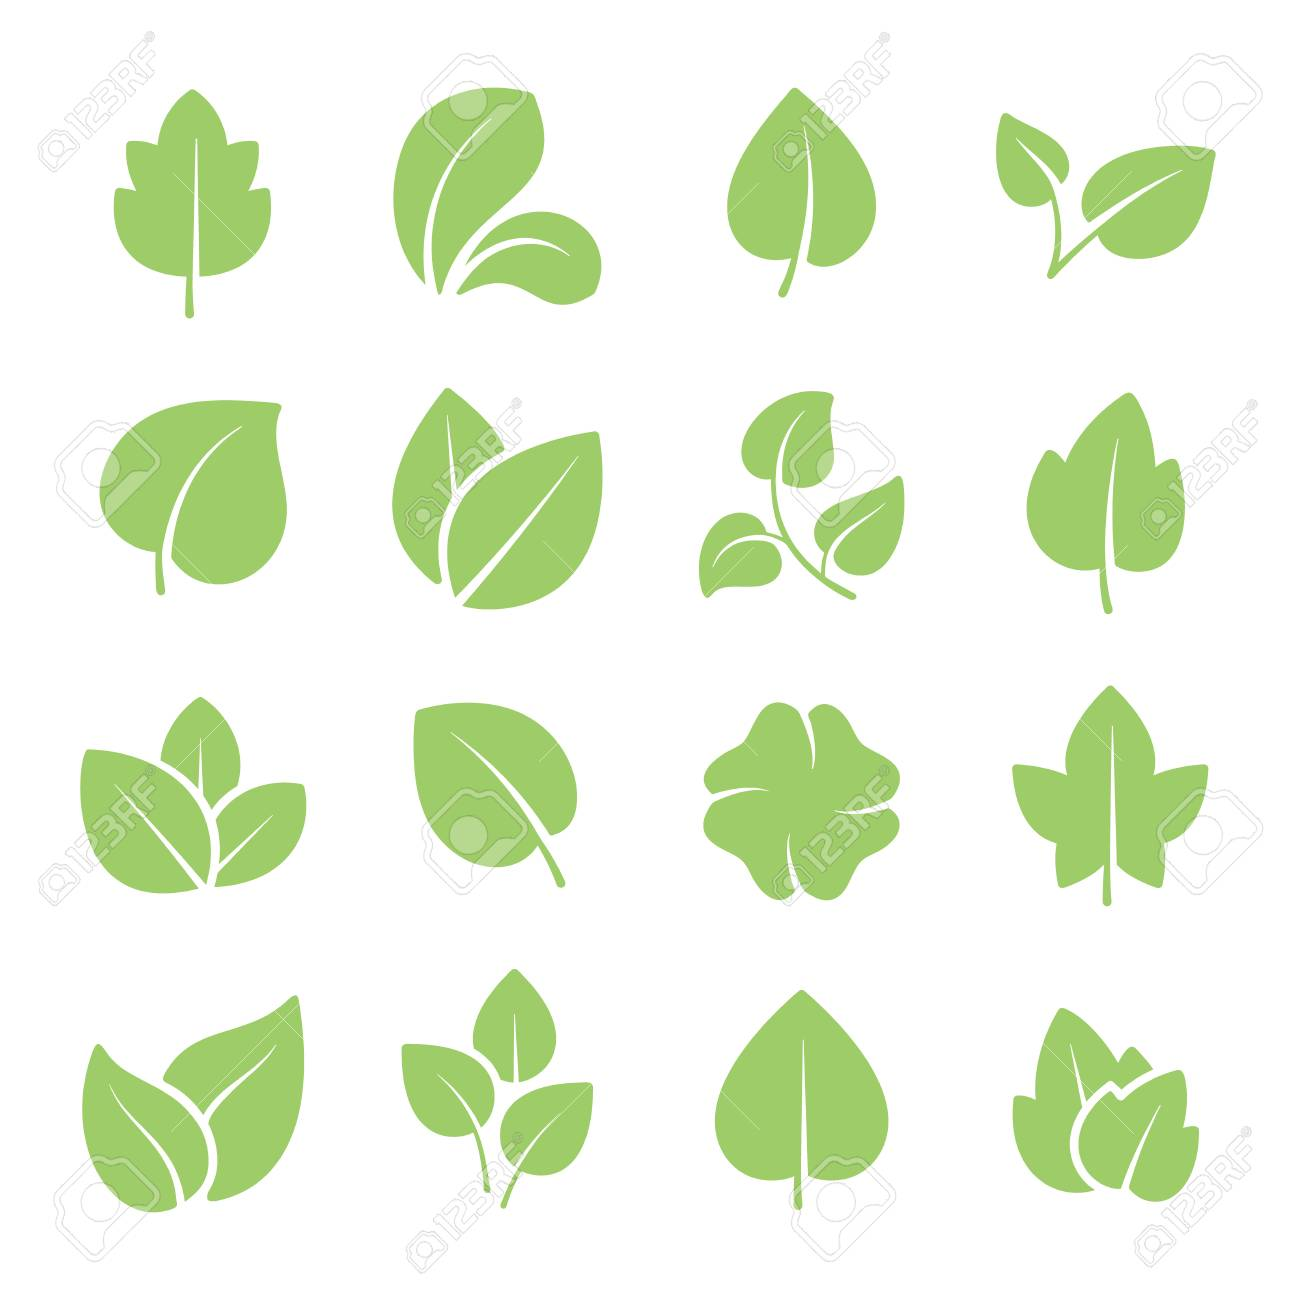 Green tree leaves. Ecology friendly, natural greens young plants pictograms and leaf or forest branch leaves. Nature greenery eco garden plant vector isolated icons set - 126931990